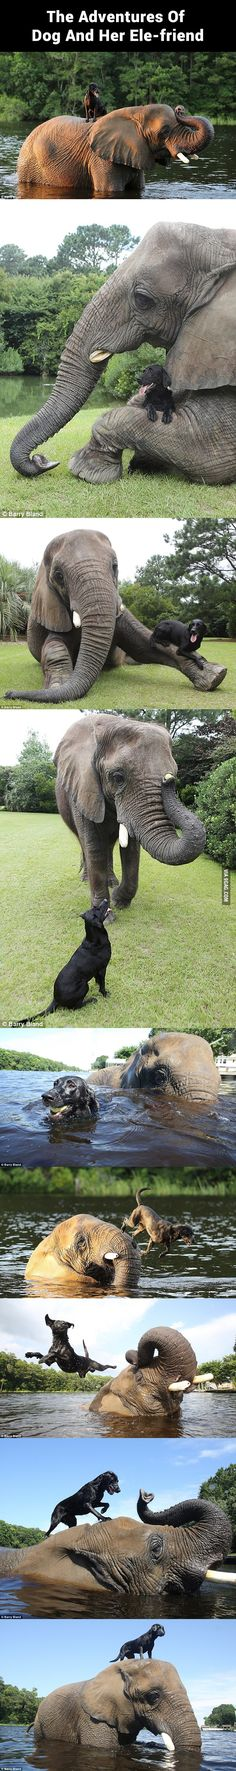 Elephant plays fetch with her puppy pal!